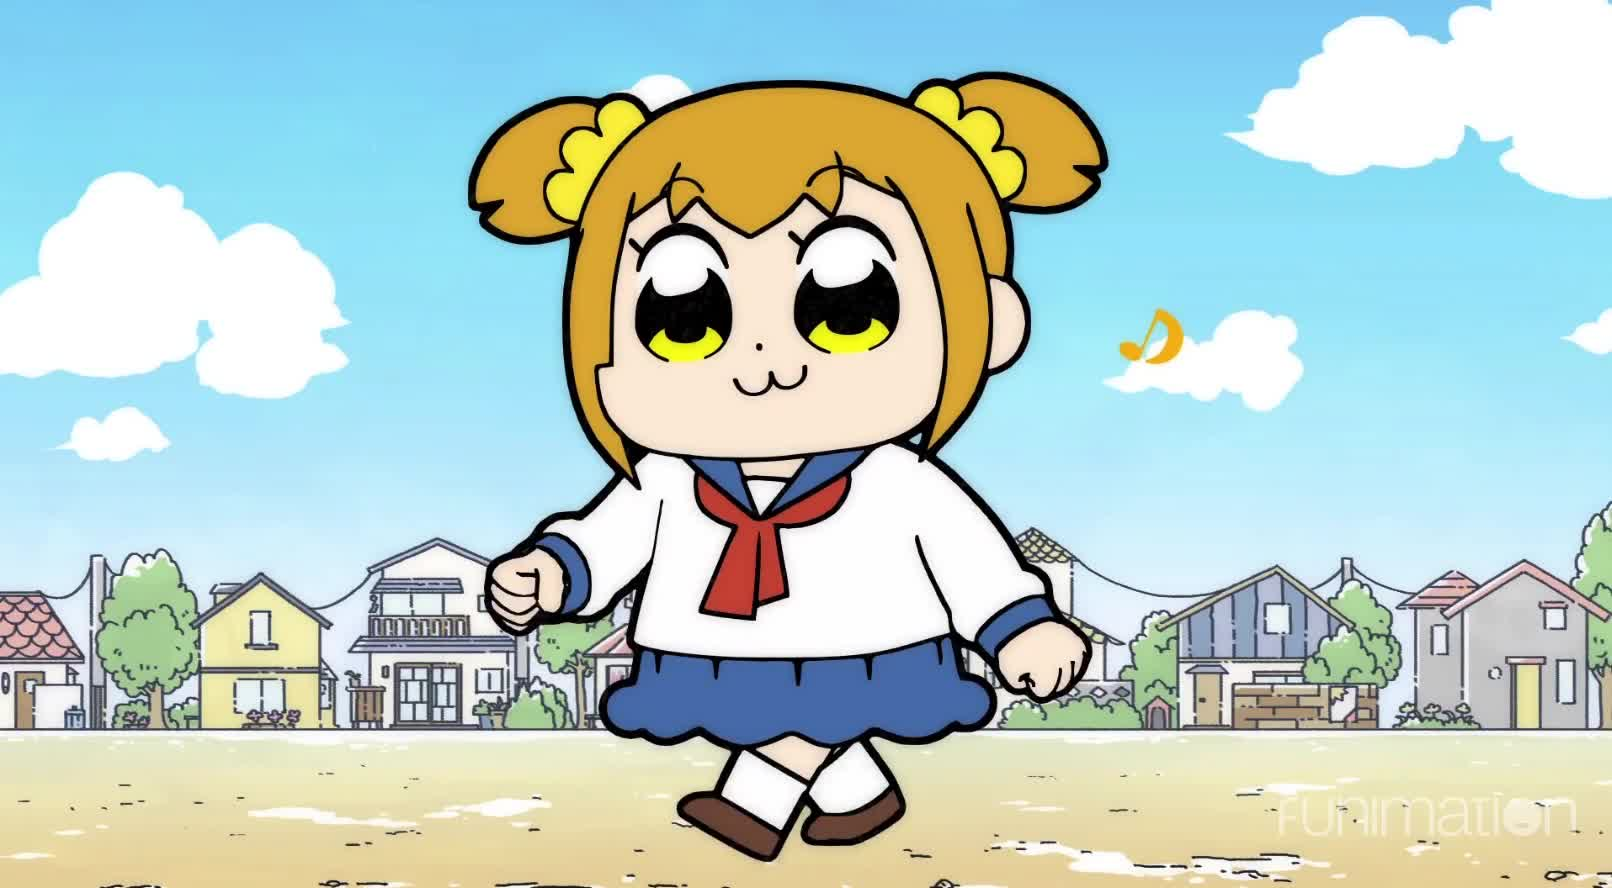 anime, cartoon, comedy, funimation, funny, pop team epic, pop team epic episode 4, Walking down the street GIFs